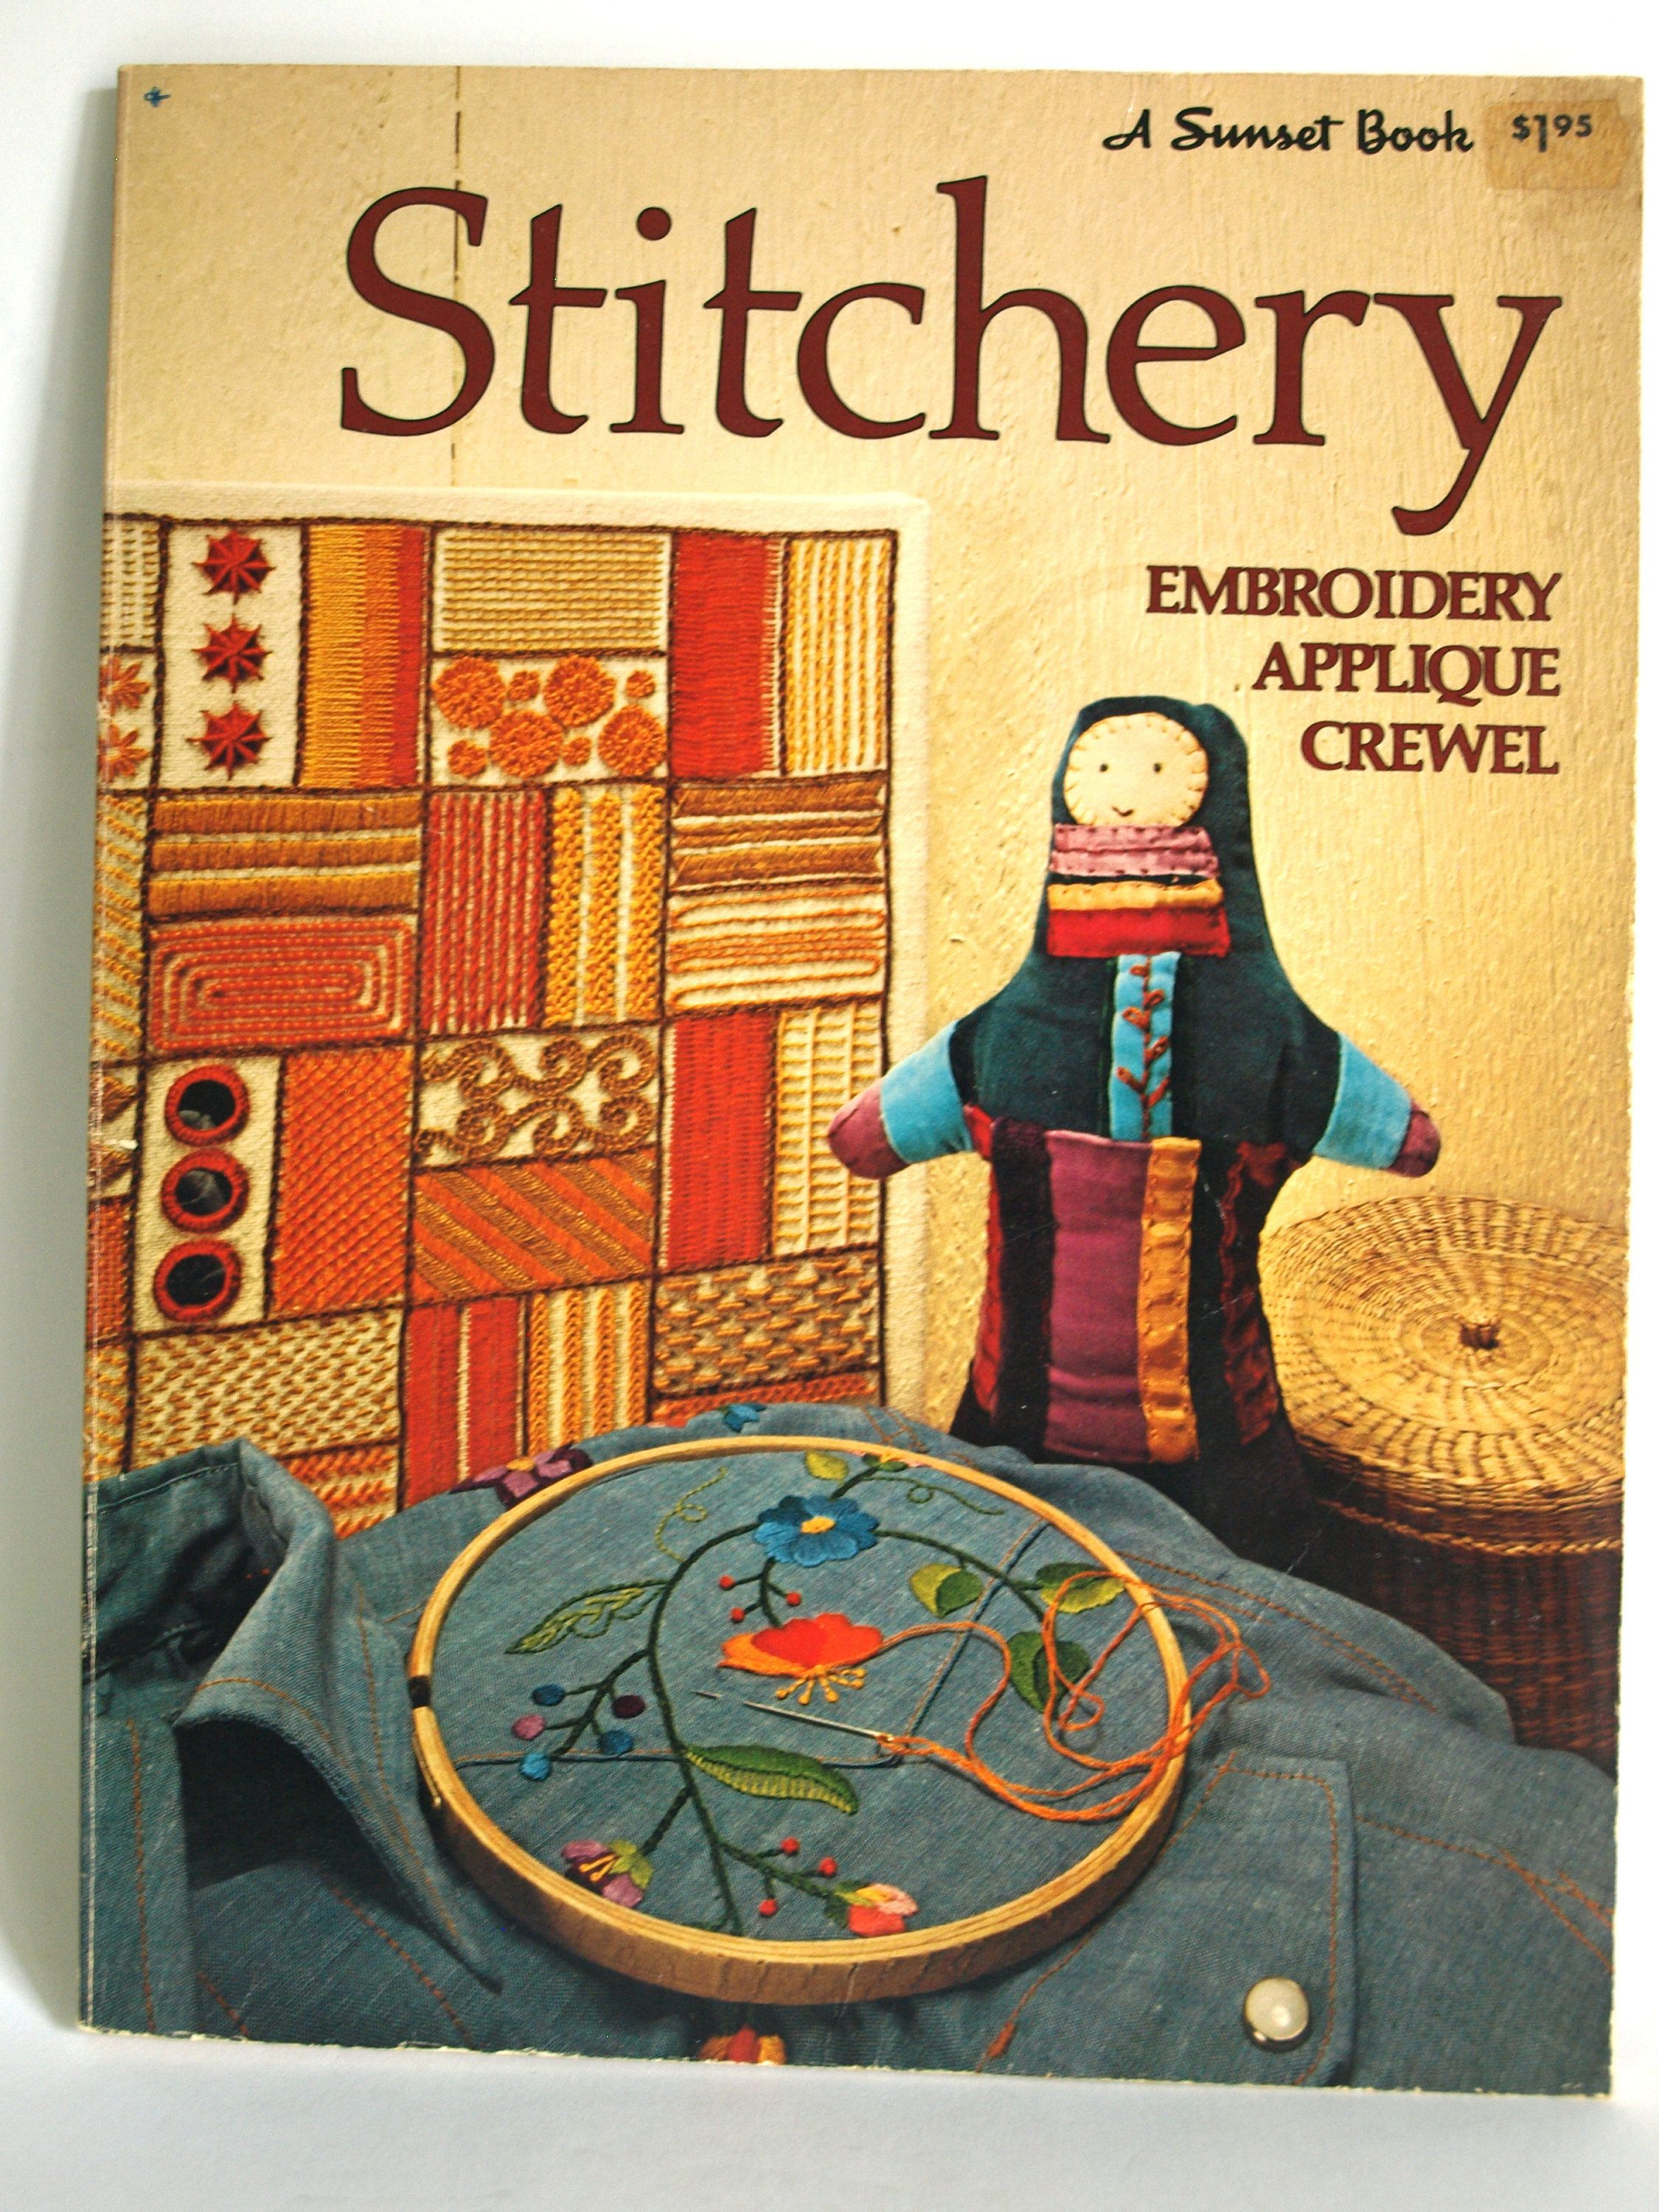 Sunset Stitchery Embroidery Applique Crewel Book - Vintage Retro 70s  Techniques DIY Projects - Crafting Patterns by FunkyKoala on Etsy